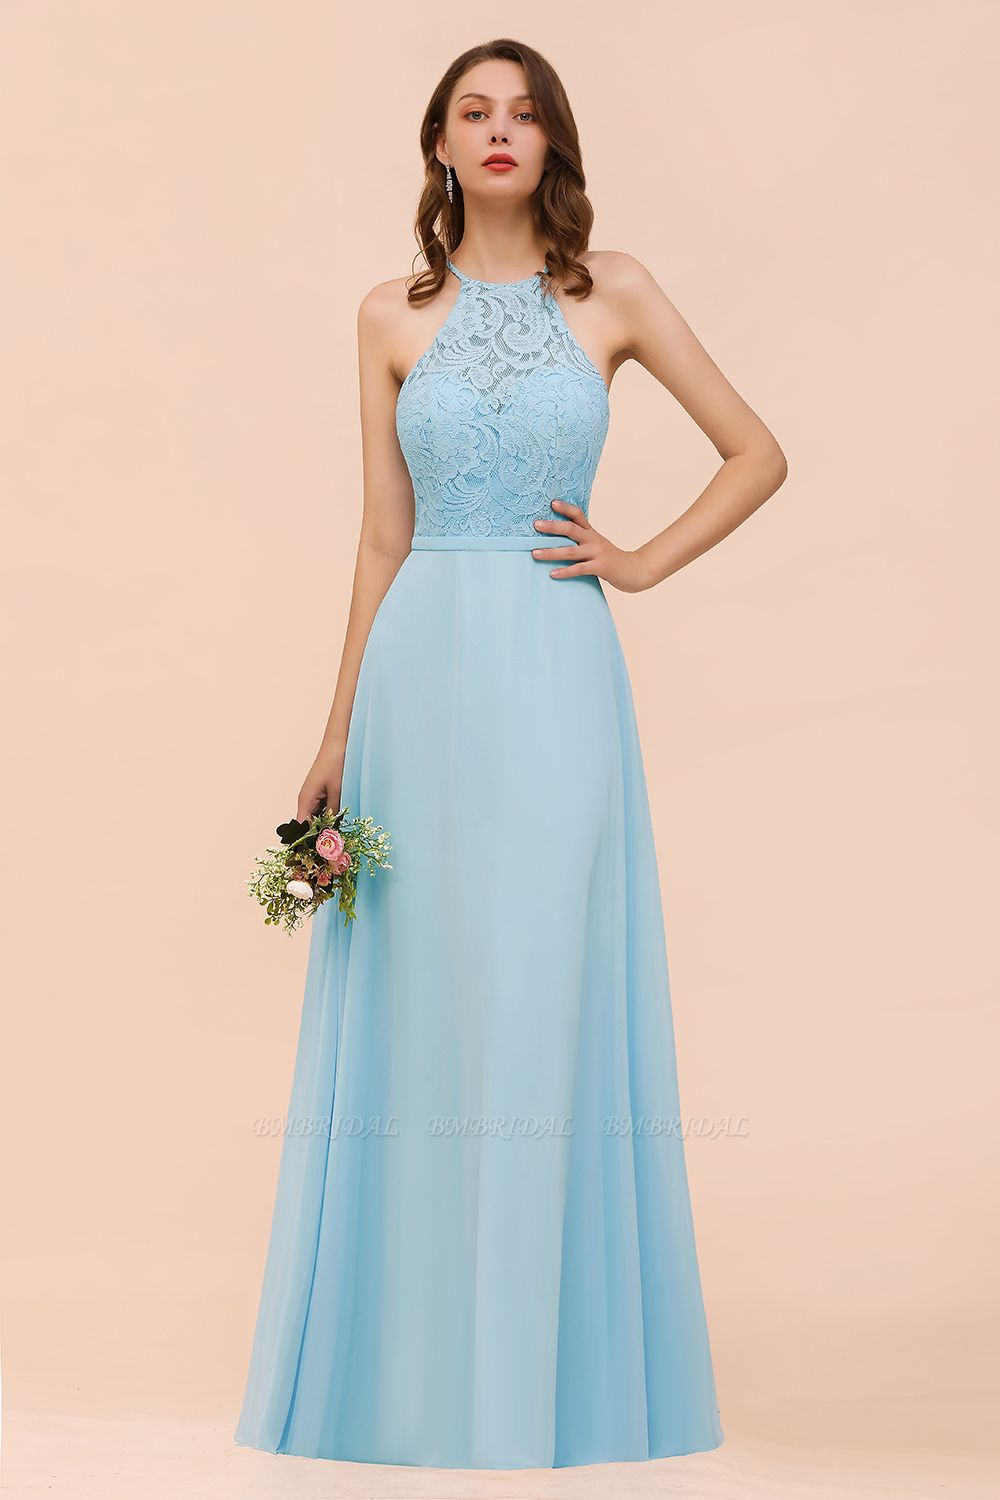 BMbridal Chic Halter Sleeveless Affordable Sky Blue Bridesmaid Dress with Lace